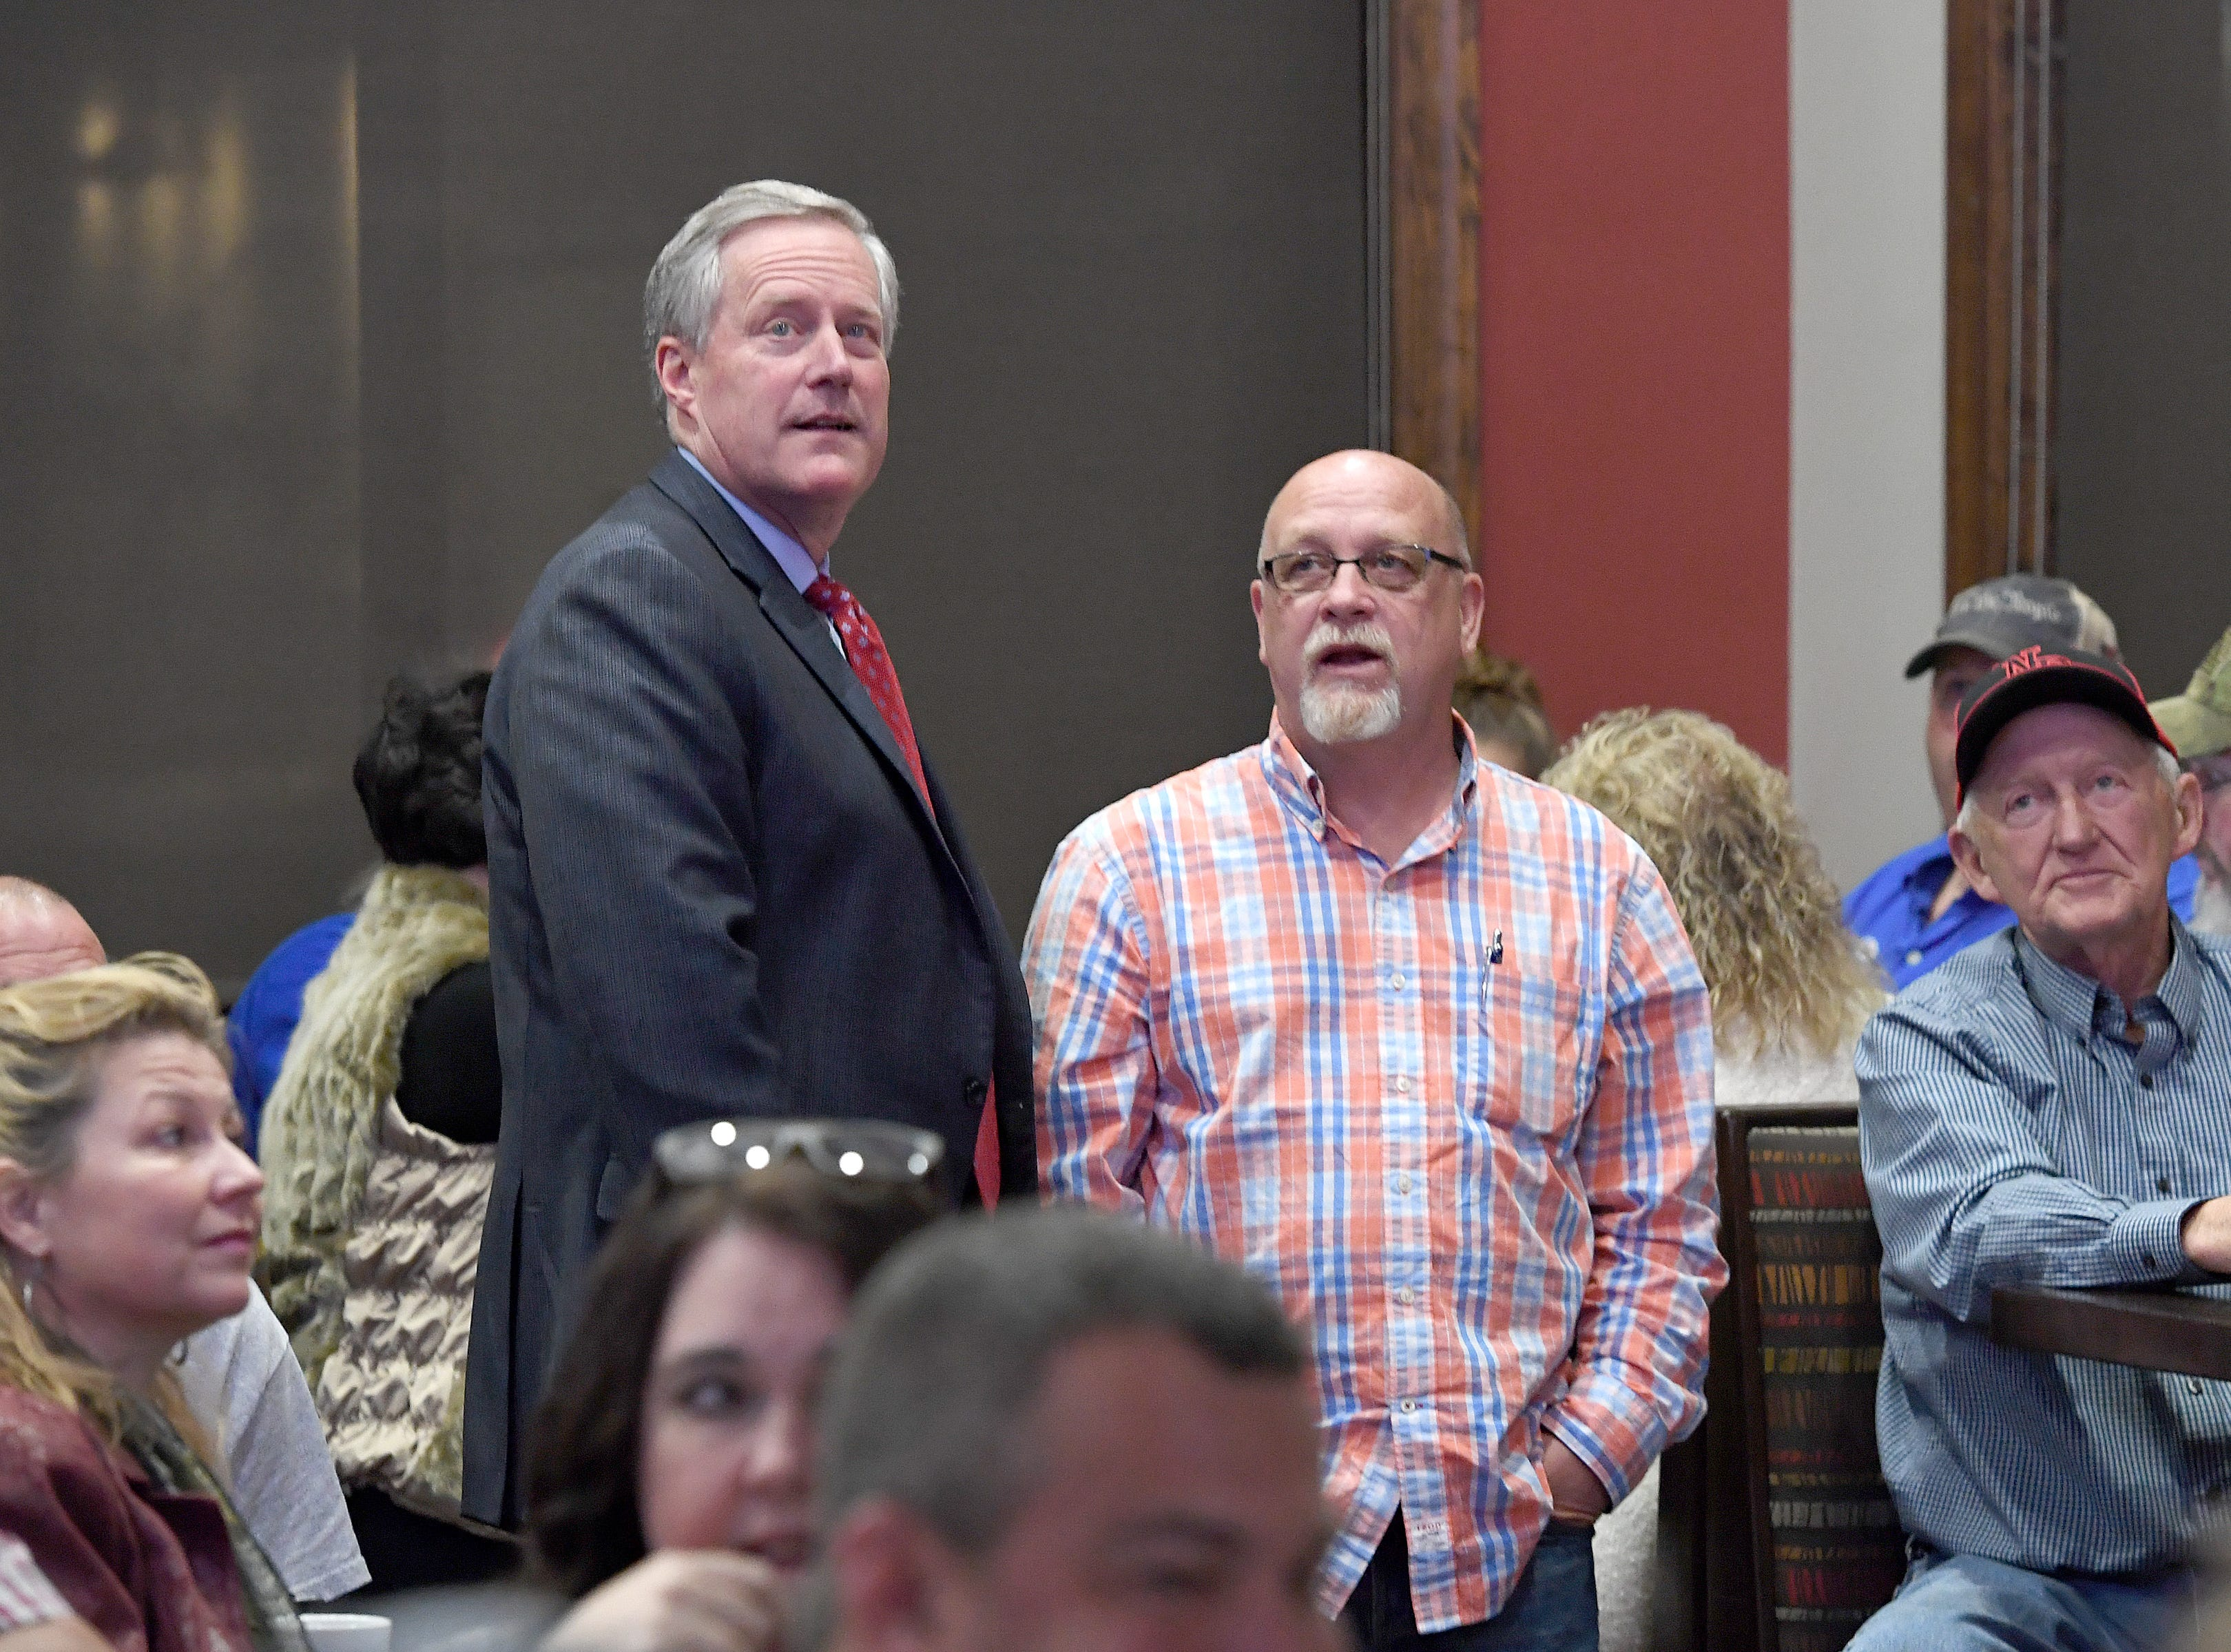 U.S. Representative Mark Meadows watches results being reported on a television with voters during an election results watch party for the Buncombe County Republicans at Twisted Laurel on Nov. 6, 2018.